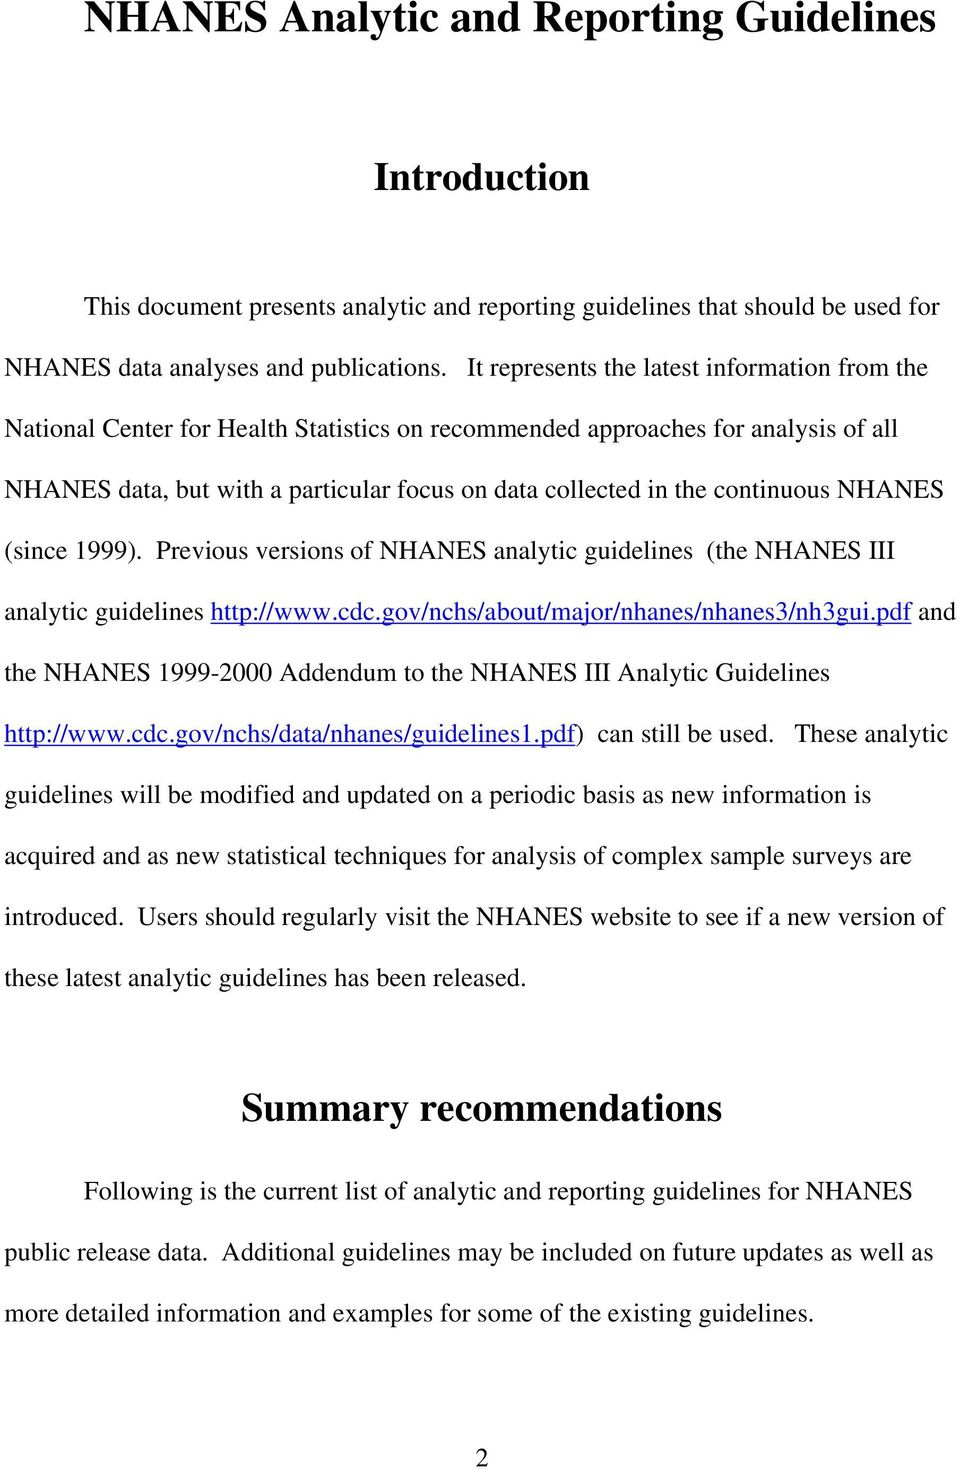 continuous NHANES (since 1999). Previous versions of NHANES analytic guidelines (the NHANES III analytic guidelines http://www.cdc.gov/nchs/about/major/nhanes/nhanes3/nh3gui.